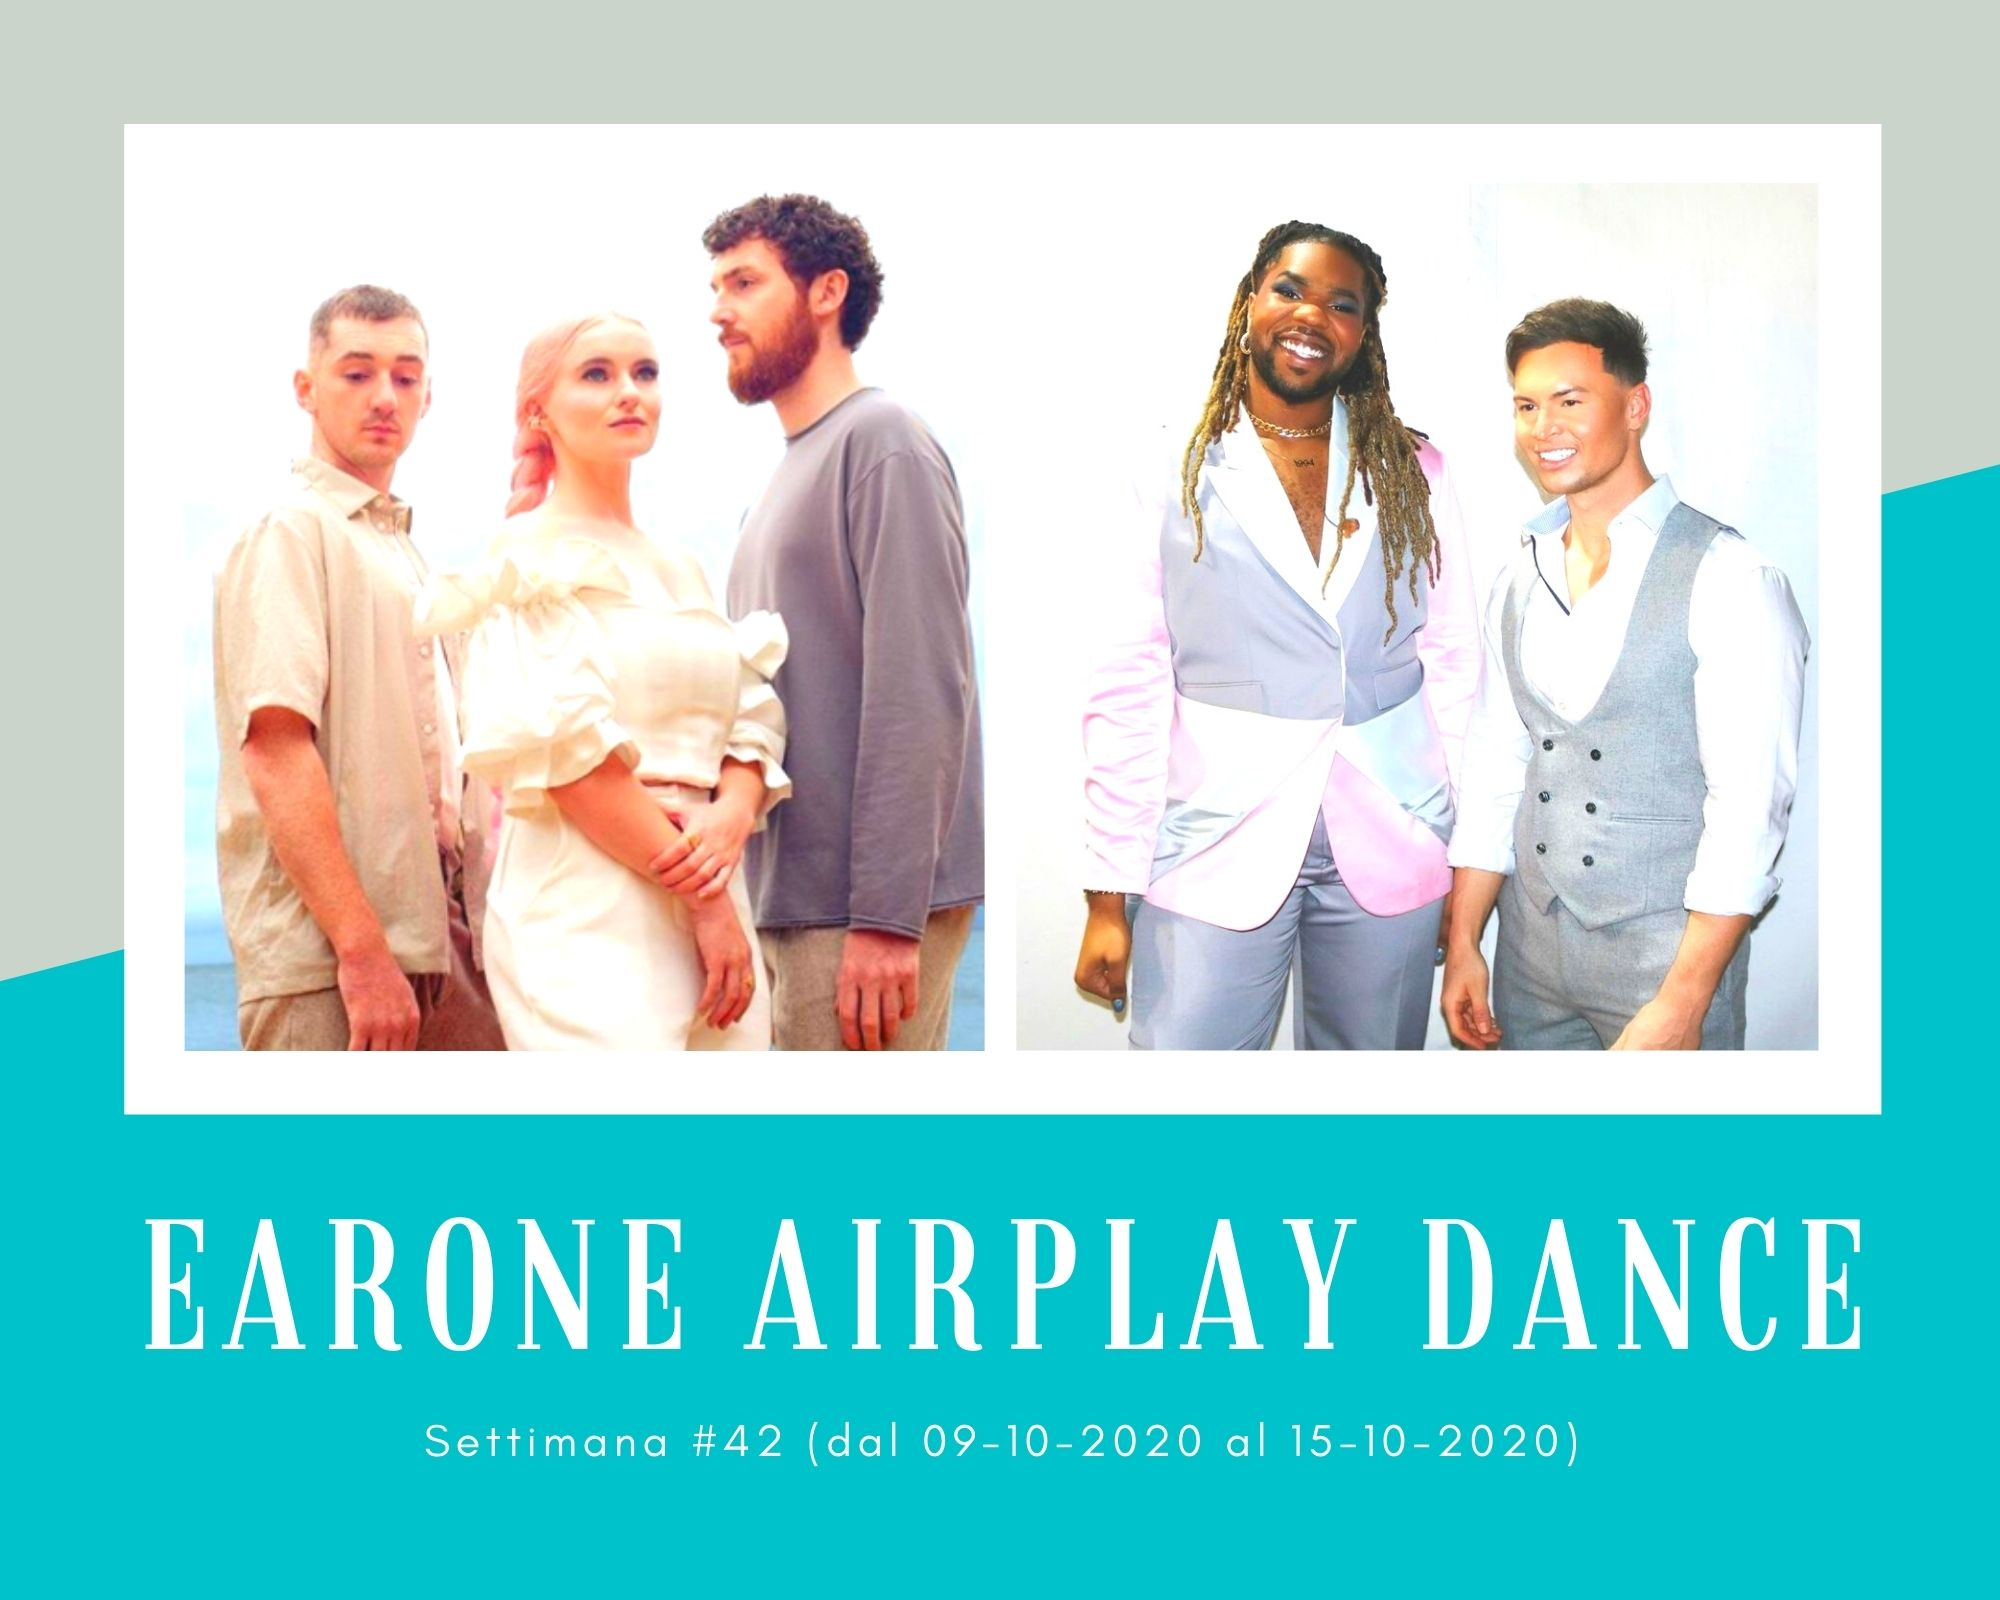 Classifica Radio EARONE Airplay Dance, week 42. I Clean Bandit supereranno Joel Corry? In pista scende anche Jax Jones